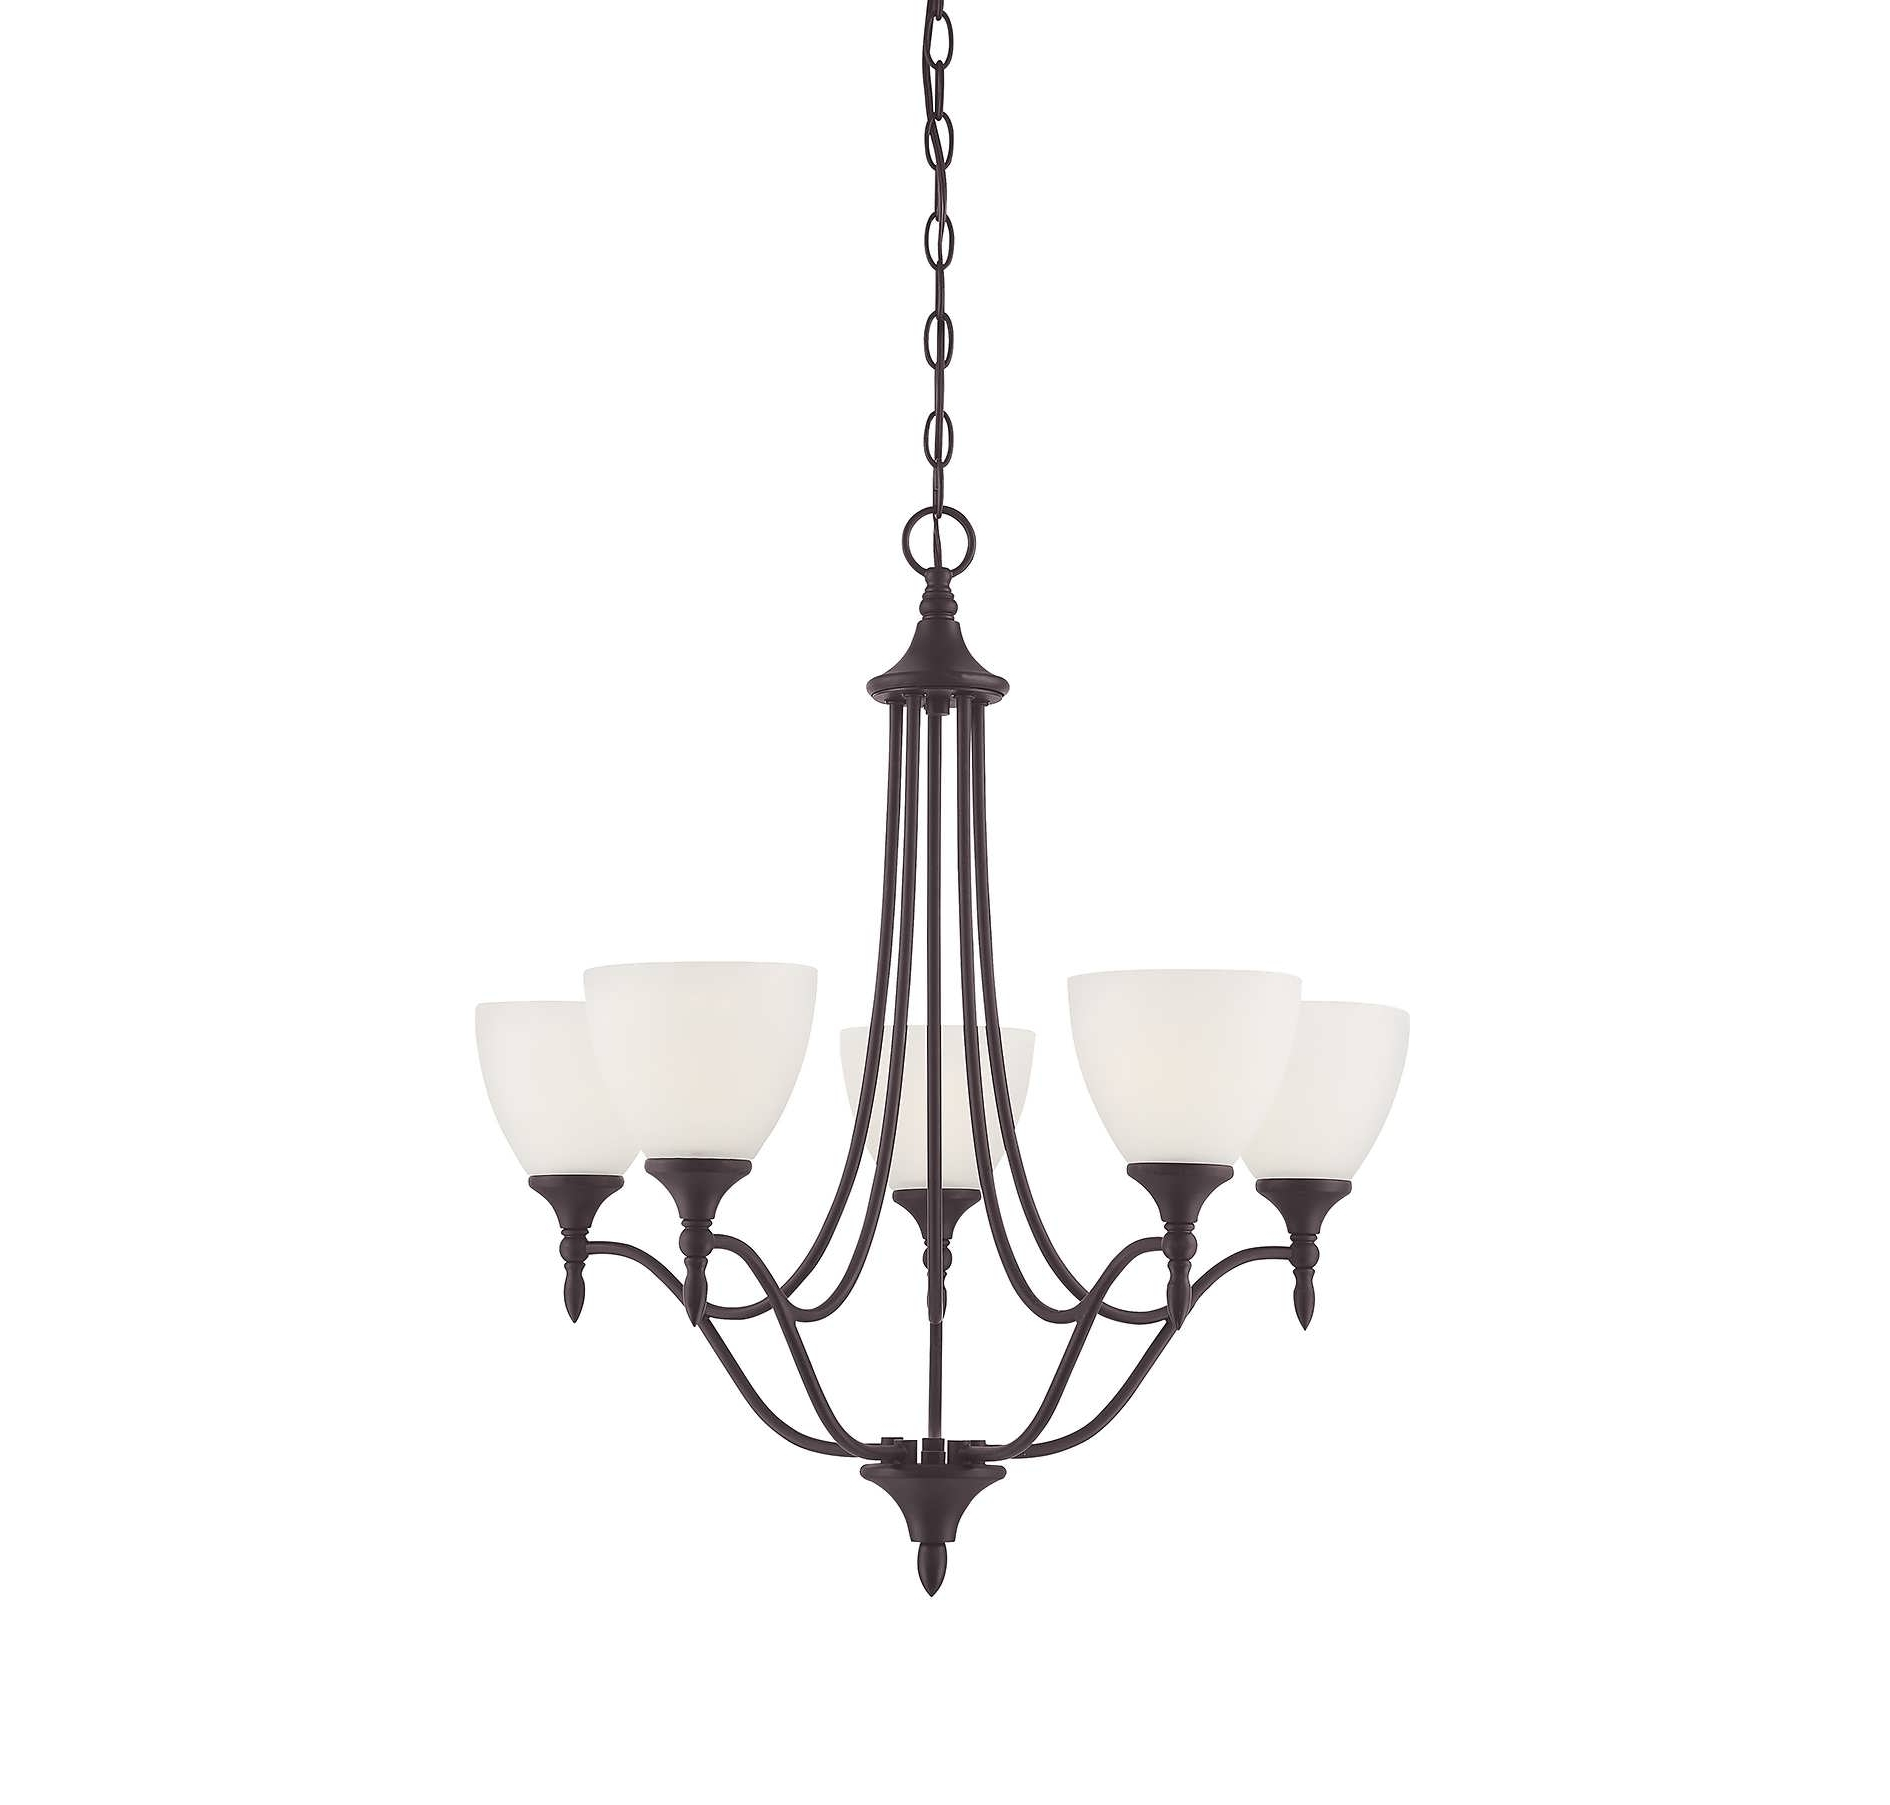 Most Current Chandelier Accessories For Light : Lighting Bulbs Watt Led Light Bulb Candle Chandelier Halogen (View 14 of 20)